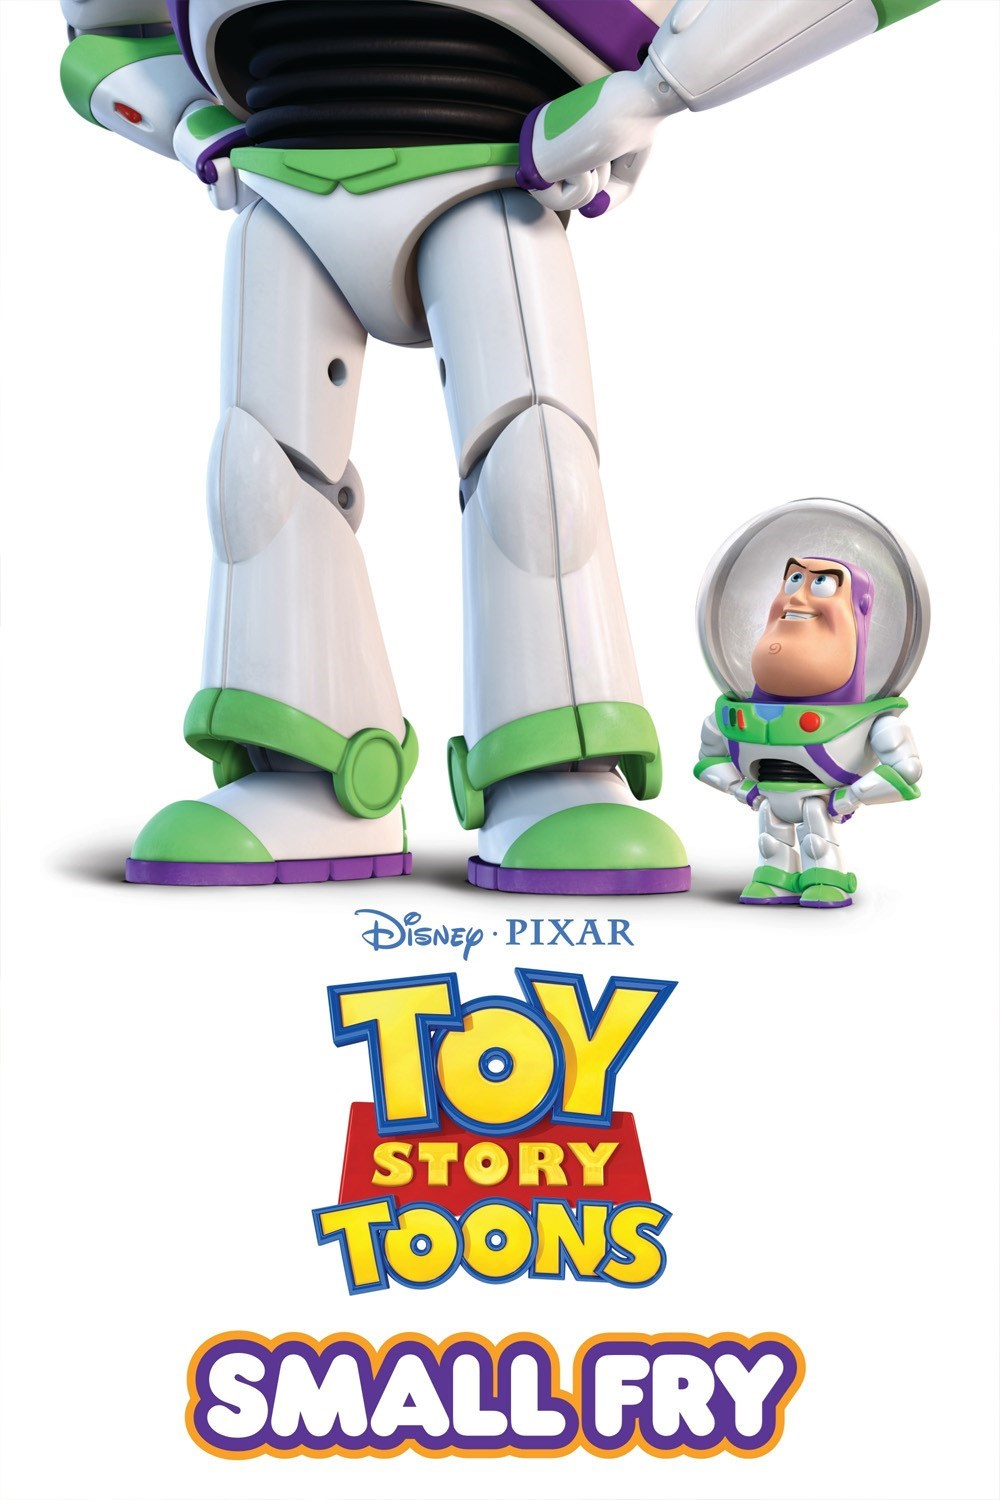 affiche poster toy story toons mini buzz small fry disney pixar